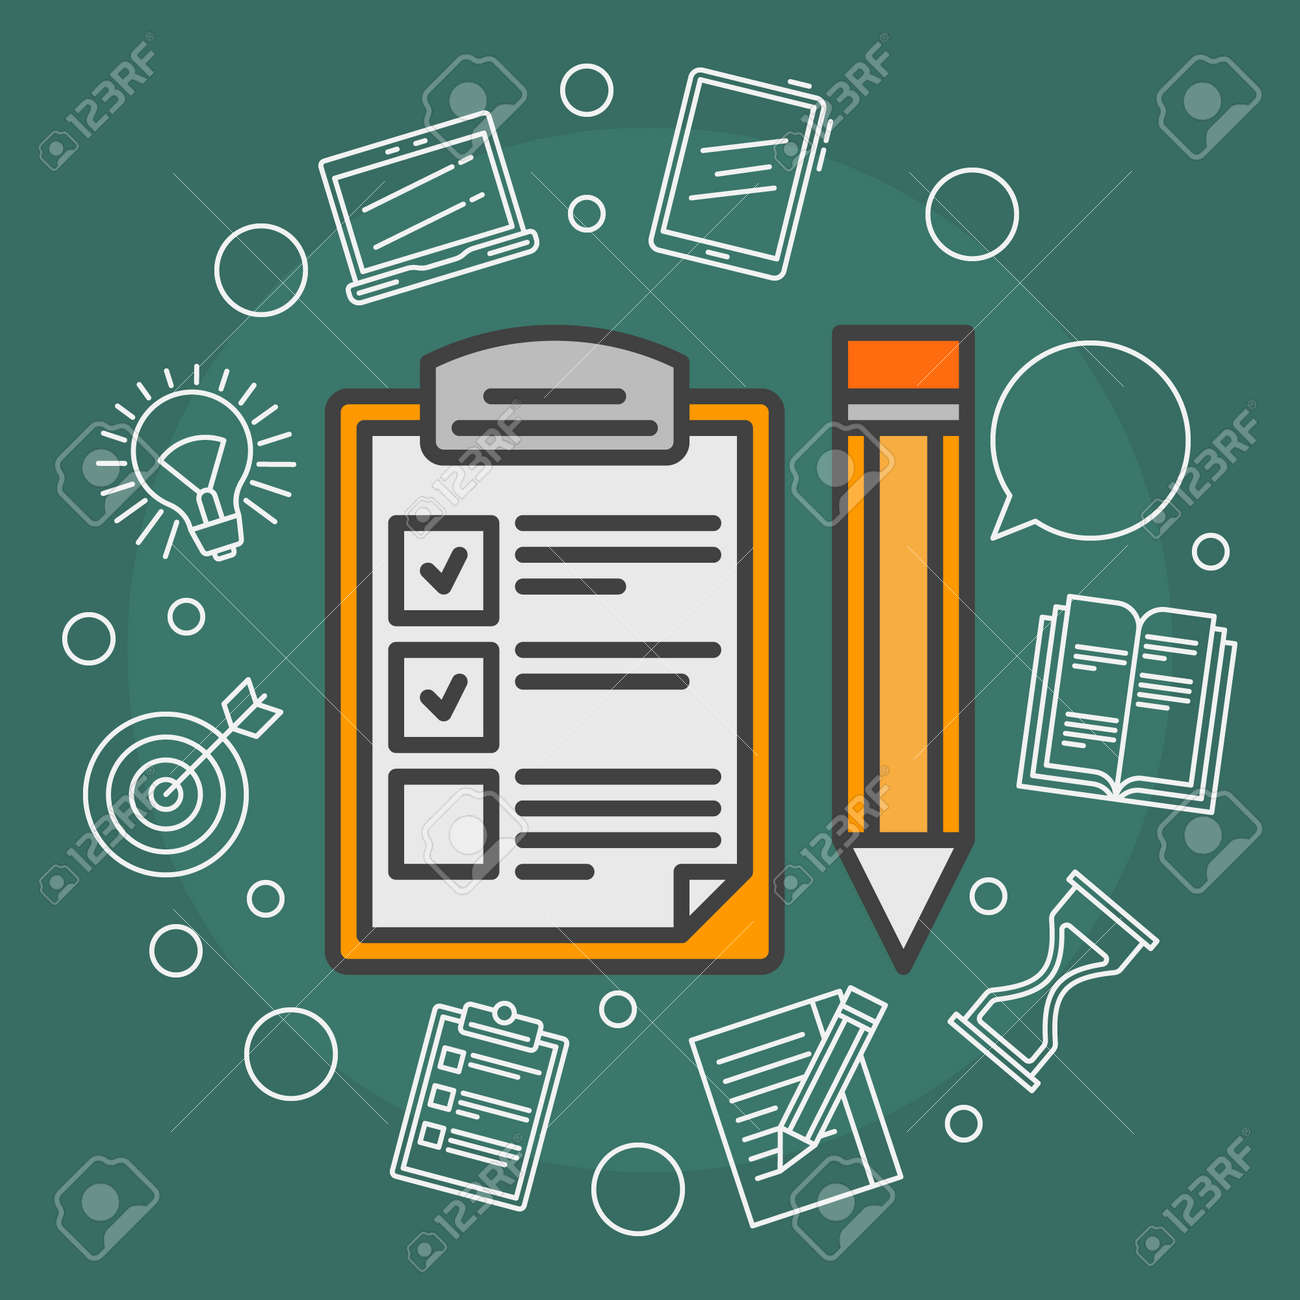 To Do List vector illustration - flat reminder concept background with outline icons - 50641564